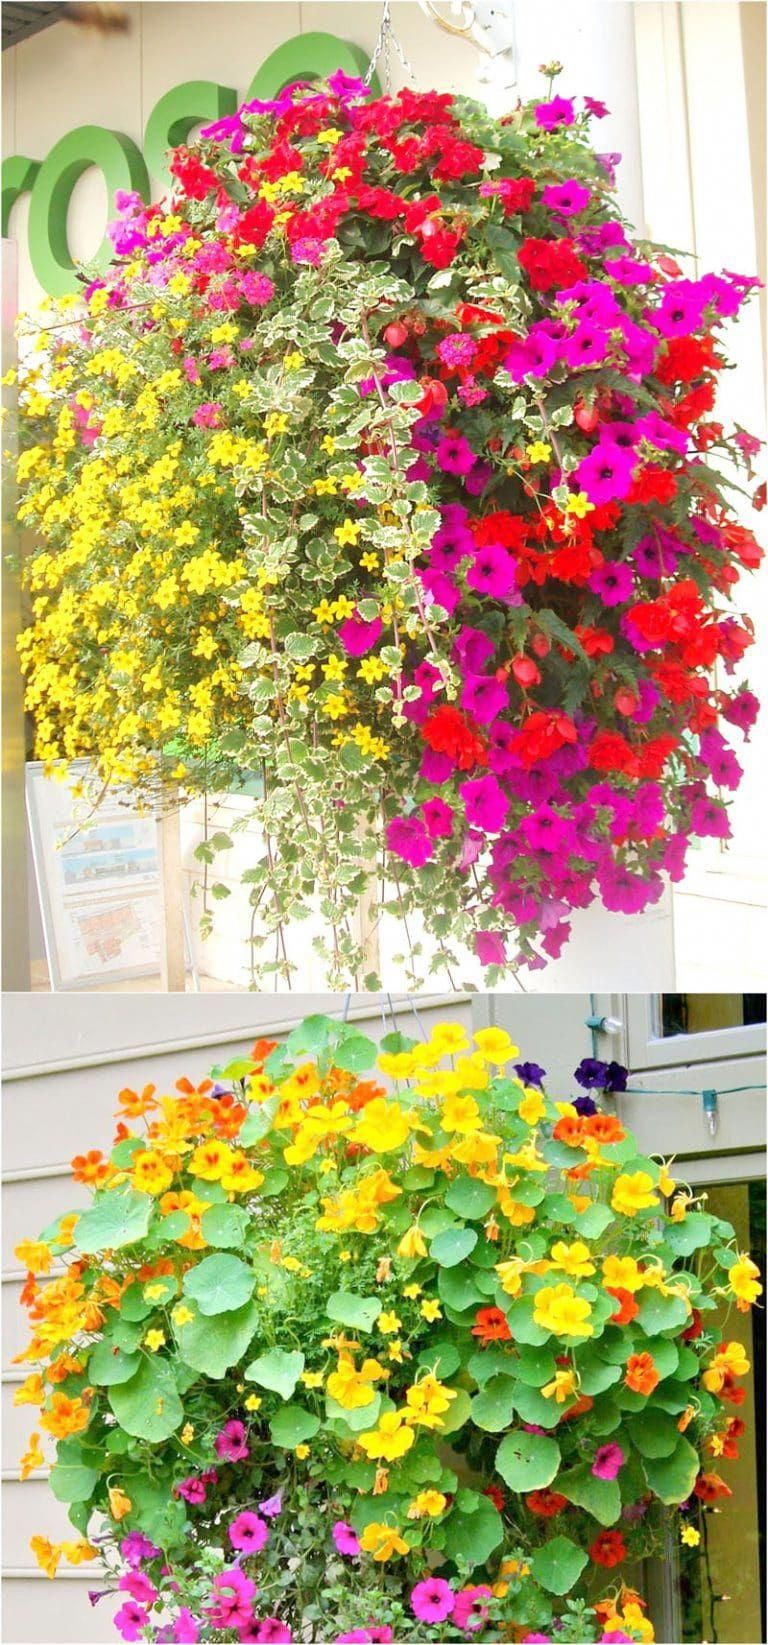 How To Plant Beautiful Flower Hanging Baskets 20 Best Hanging Basket Plants A Piece Of Rainb Plants For Hanging Baskets Hanging Plants Outdoor Flowers